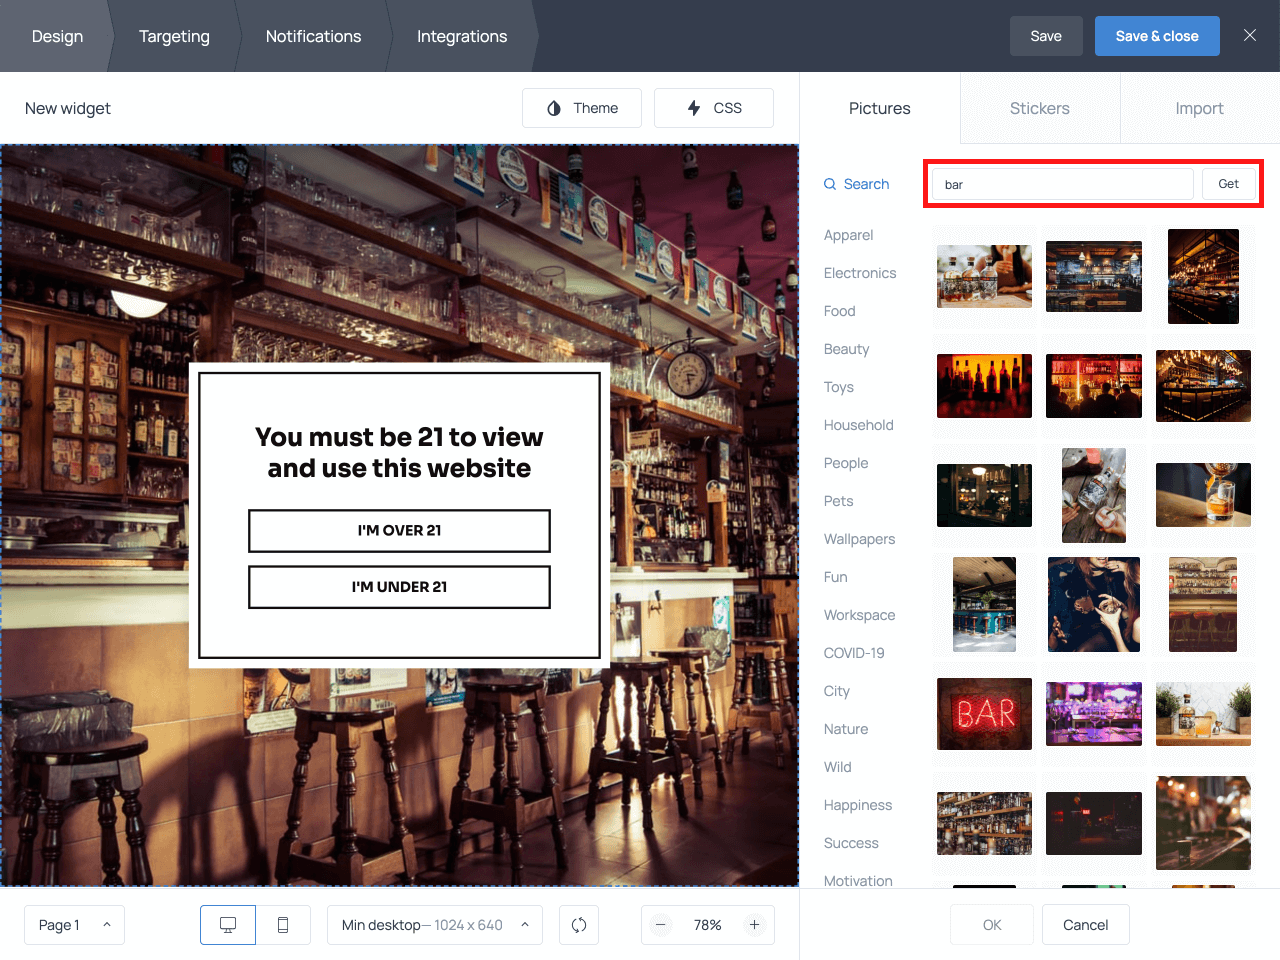 How to change the background image on the age verification popup